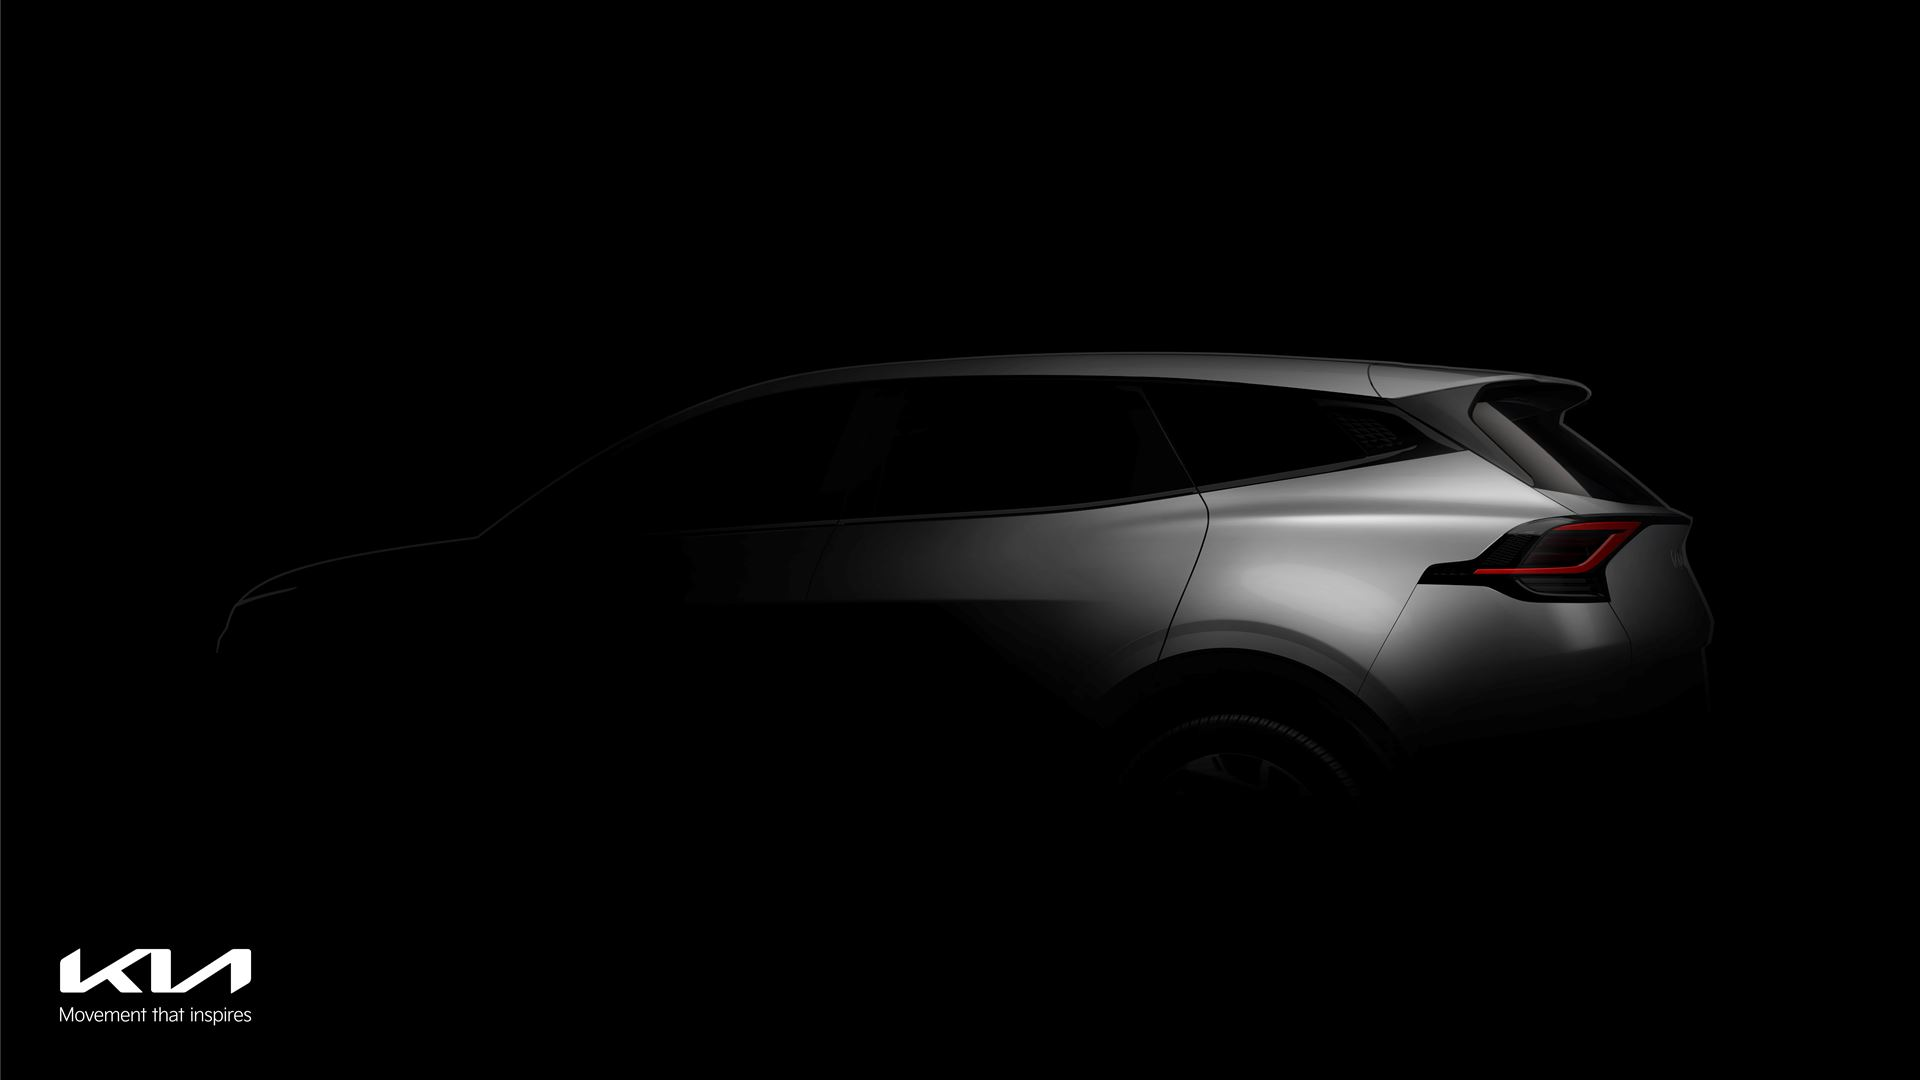 Kia teases first images of the all-new Sportage - Image 2